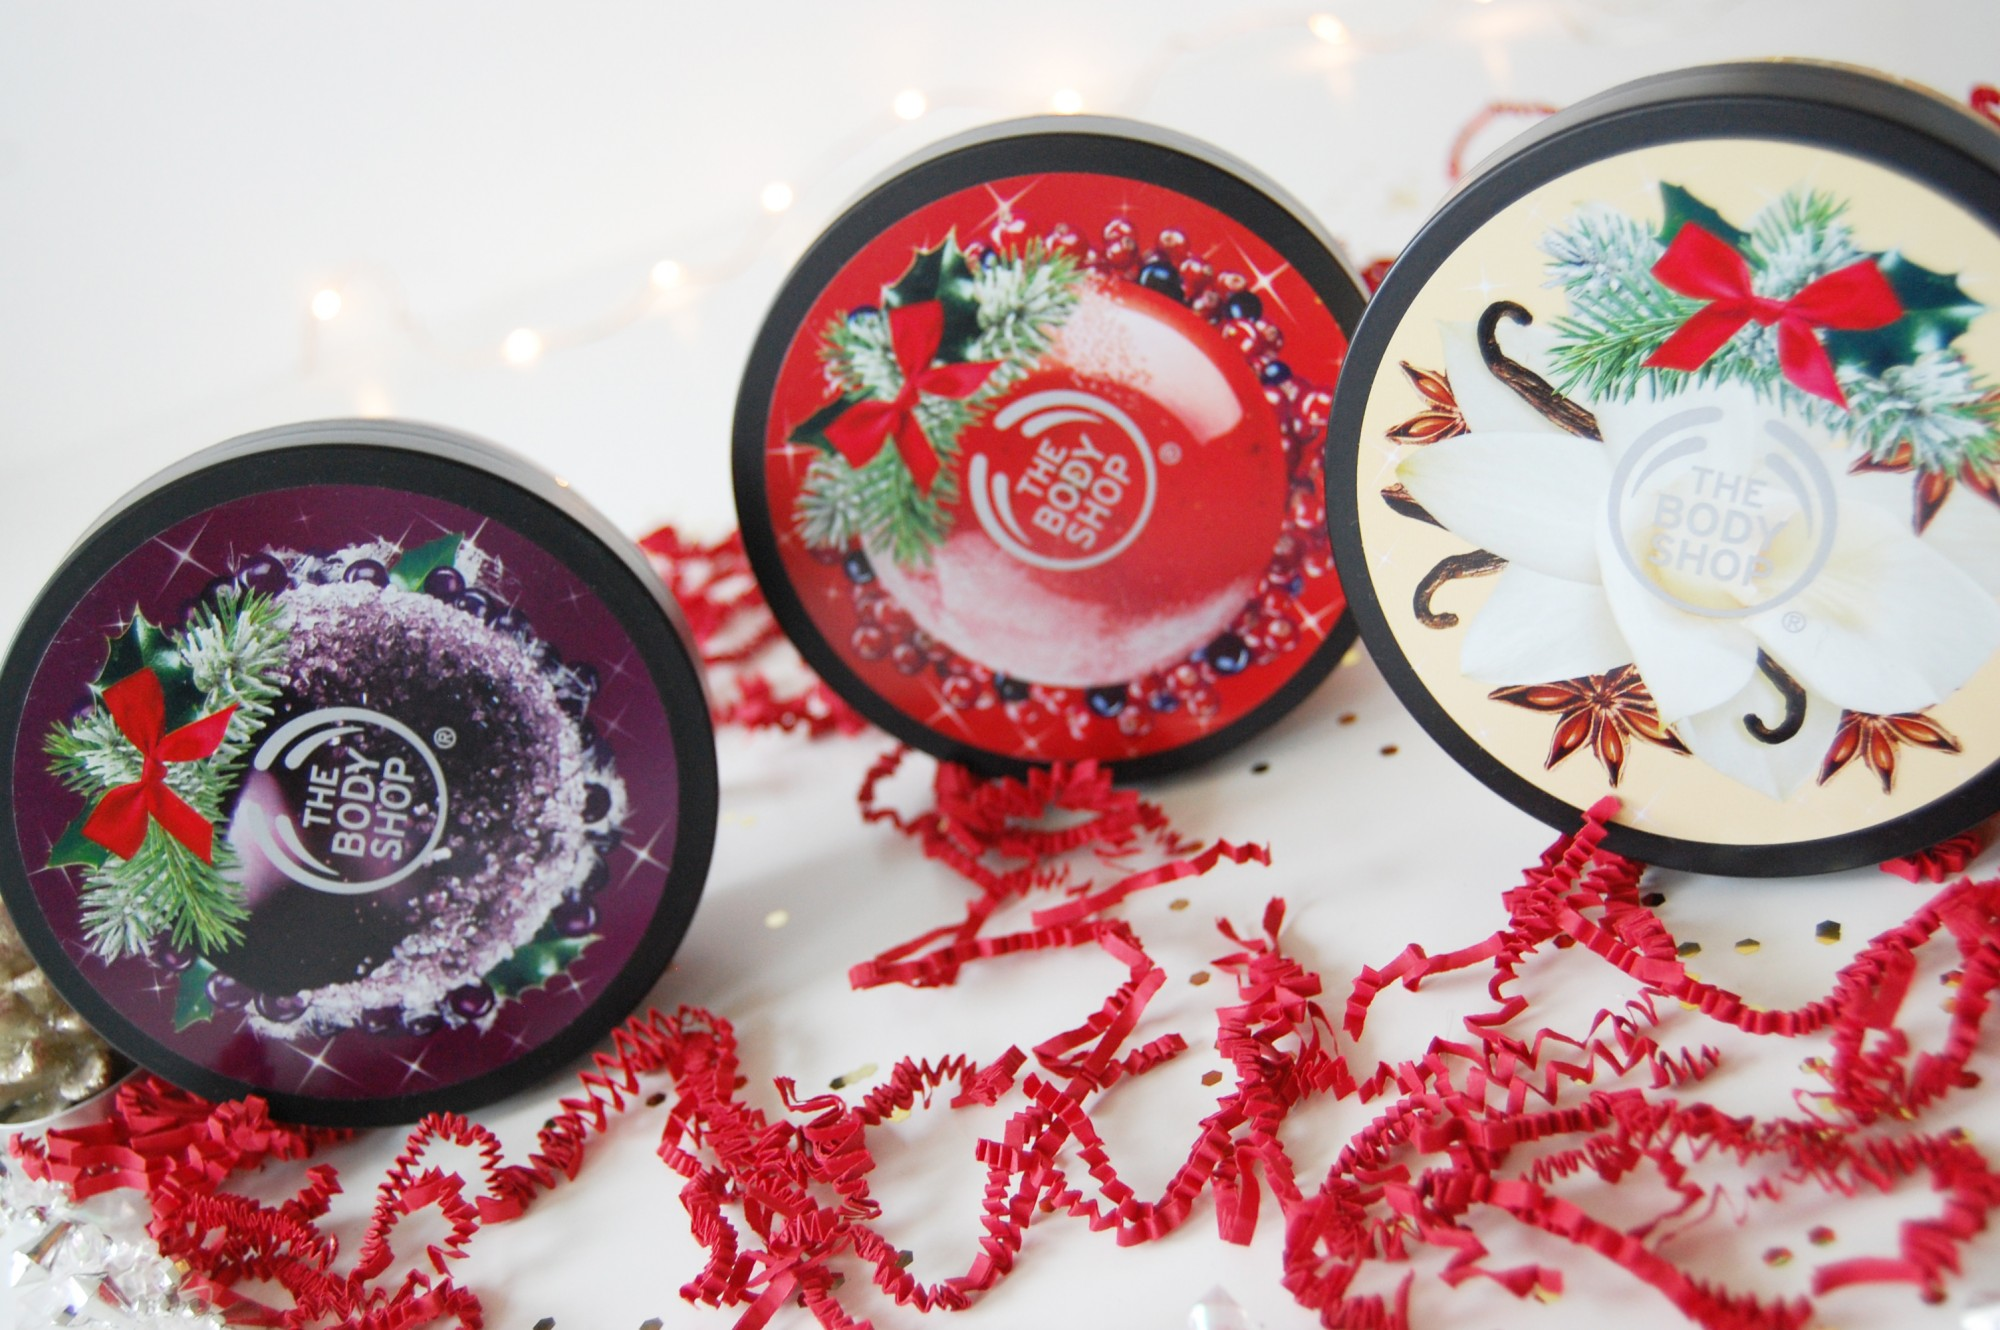 The Body Shop Christmas body butter